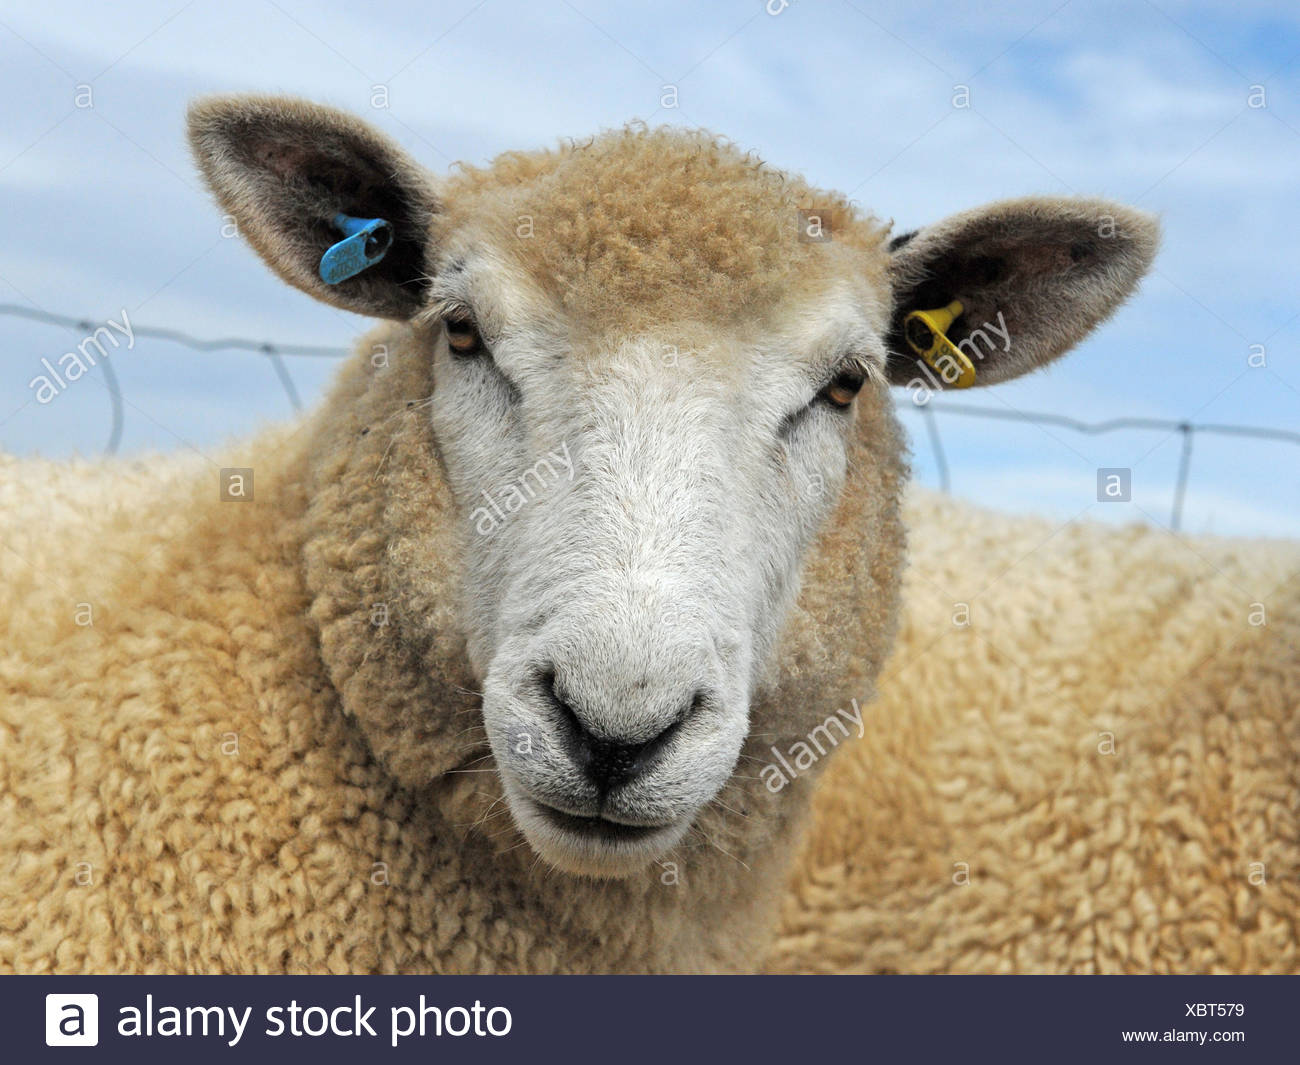 An angry looking sheep with light brown fleece - Stock Image